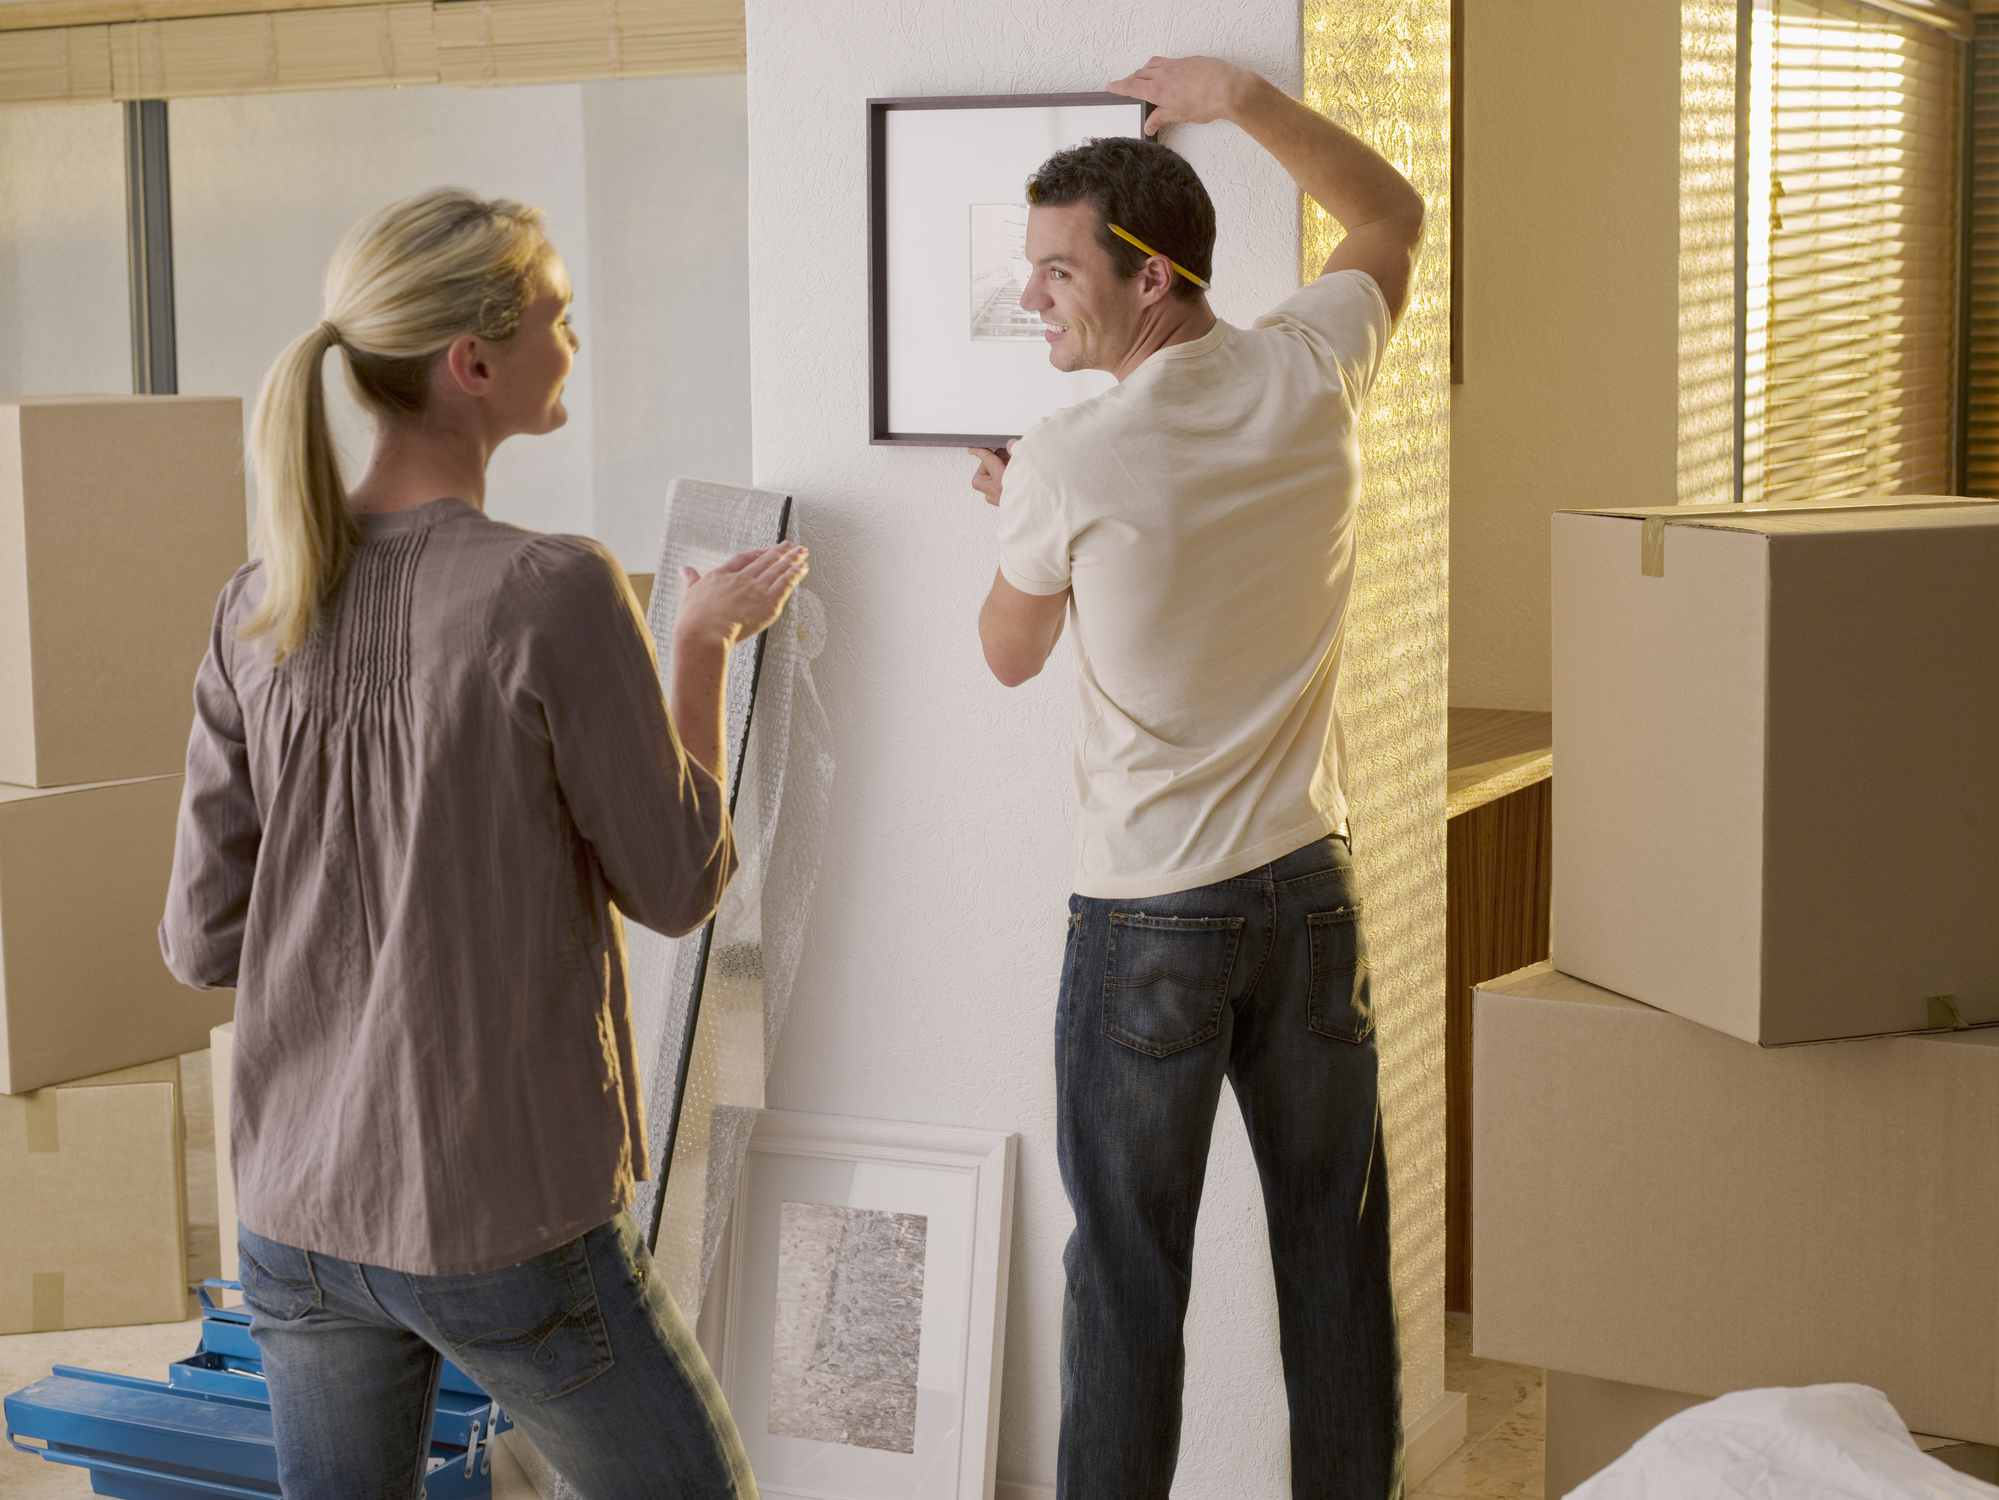 Man and woman hang up a painting on the wall.